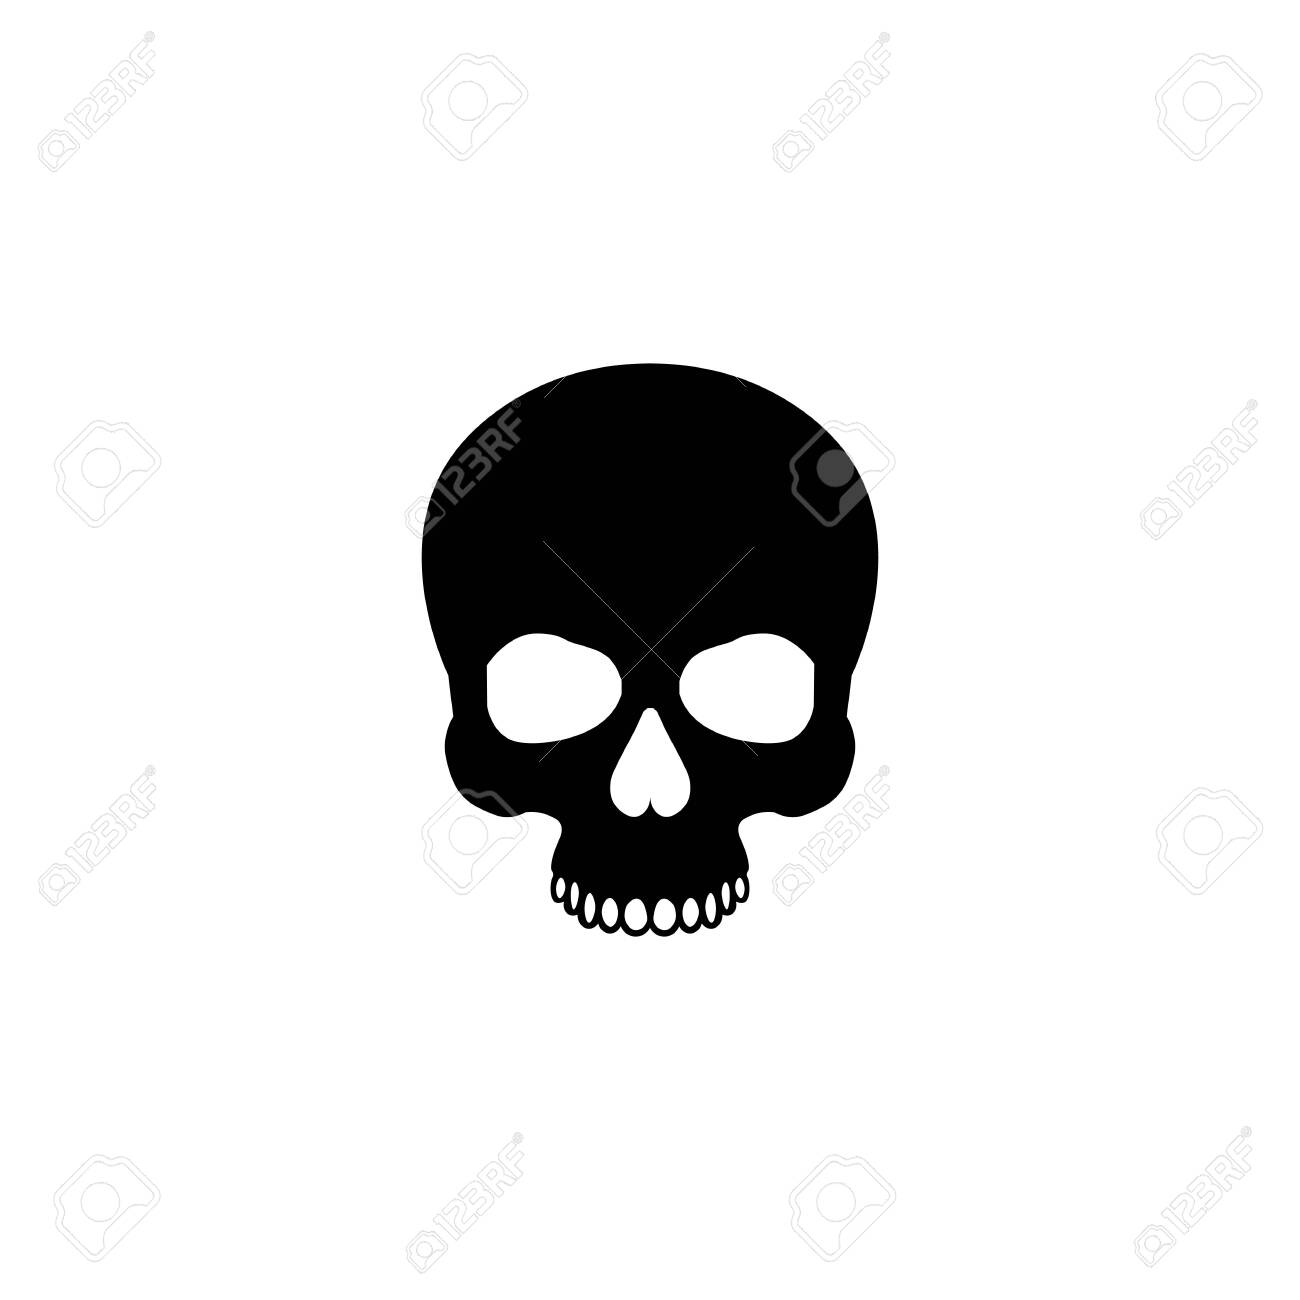 Flat Black Skull Icon Royalty Free Cliparts Vectors And Stock Illustration Image 143183588 Download 37 vector icons and icon kits.available in png, ico or icns icons for mac for free use. flat black skull icon